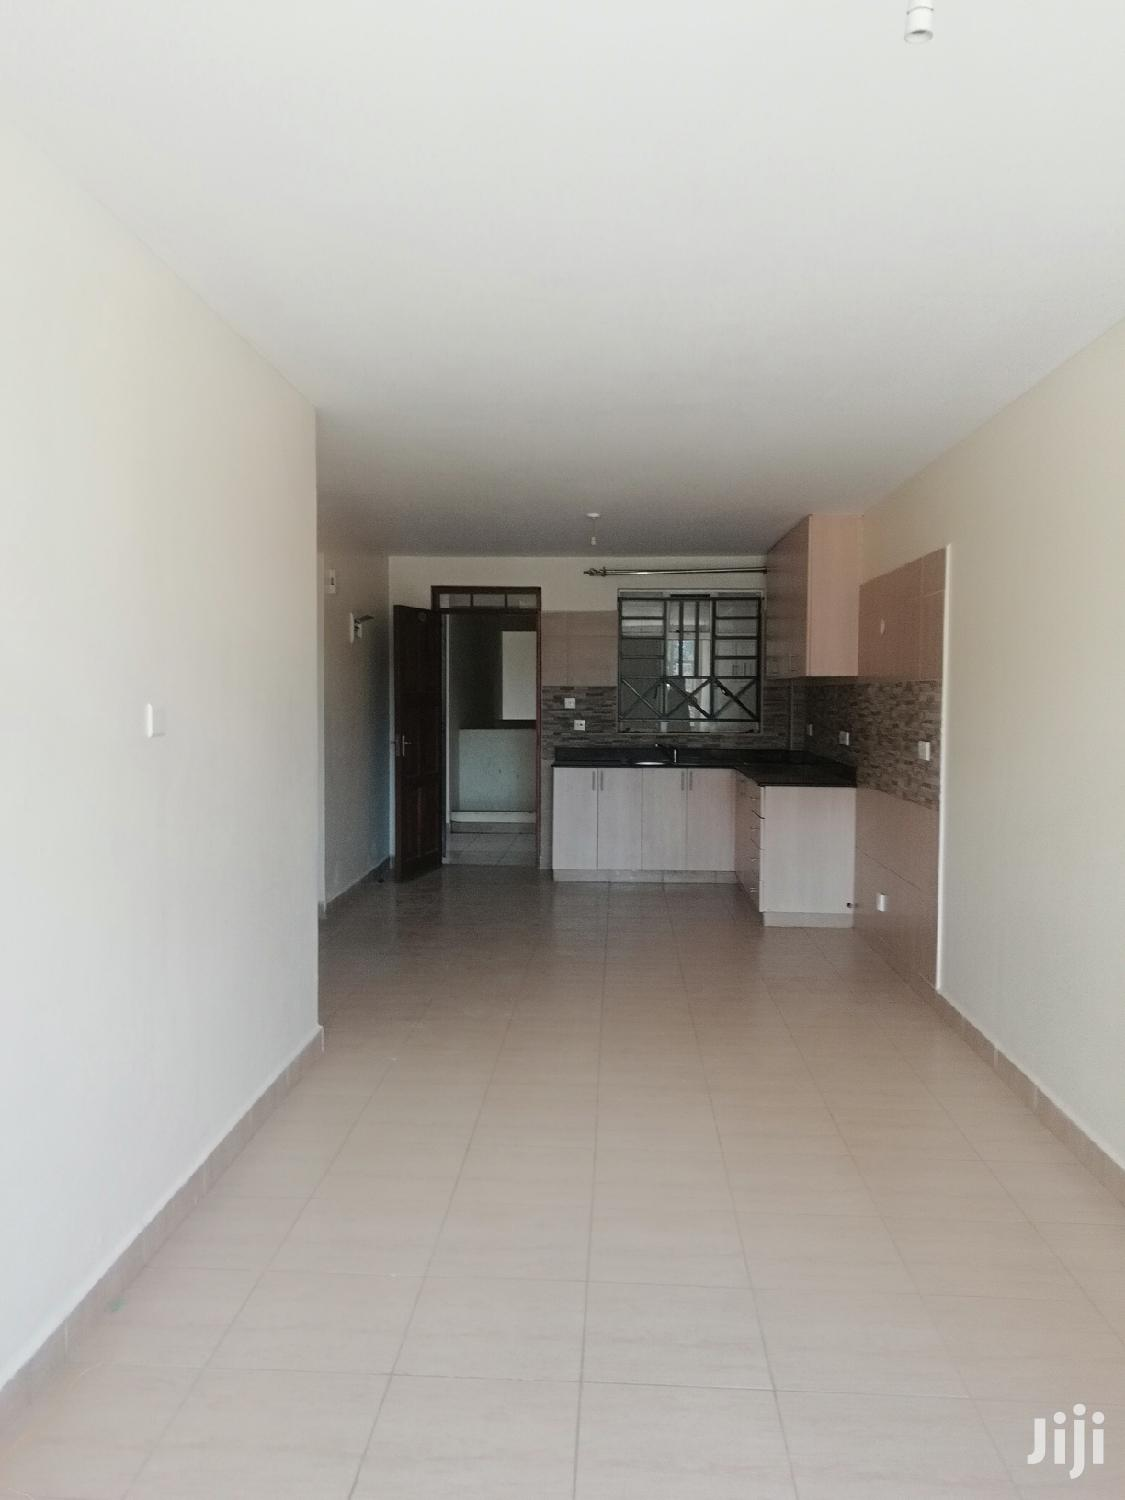 Property World ;1br Apartment With, Gym, Lift and Secure | Houses & Apartments For Rent for sale in Lavington, Nairobi, Kenya